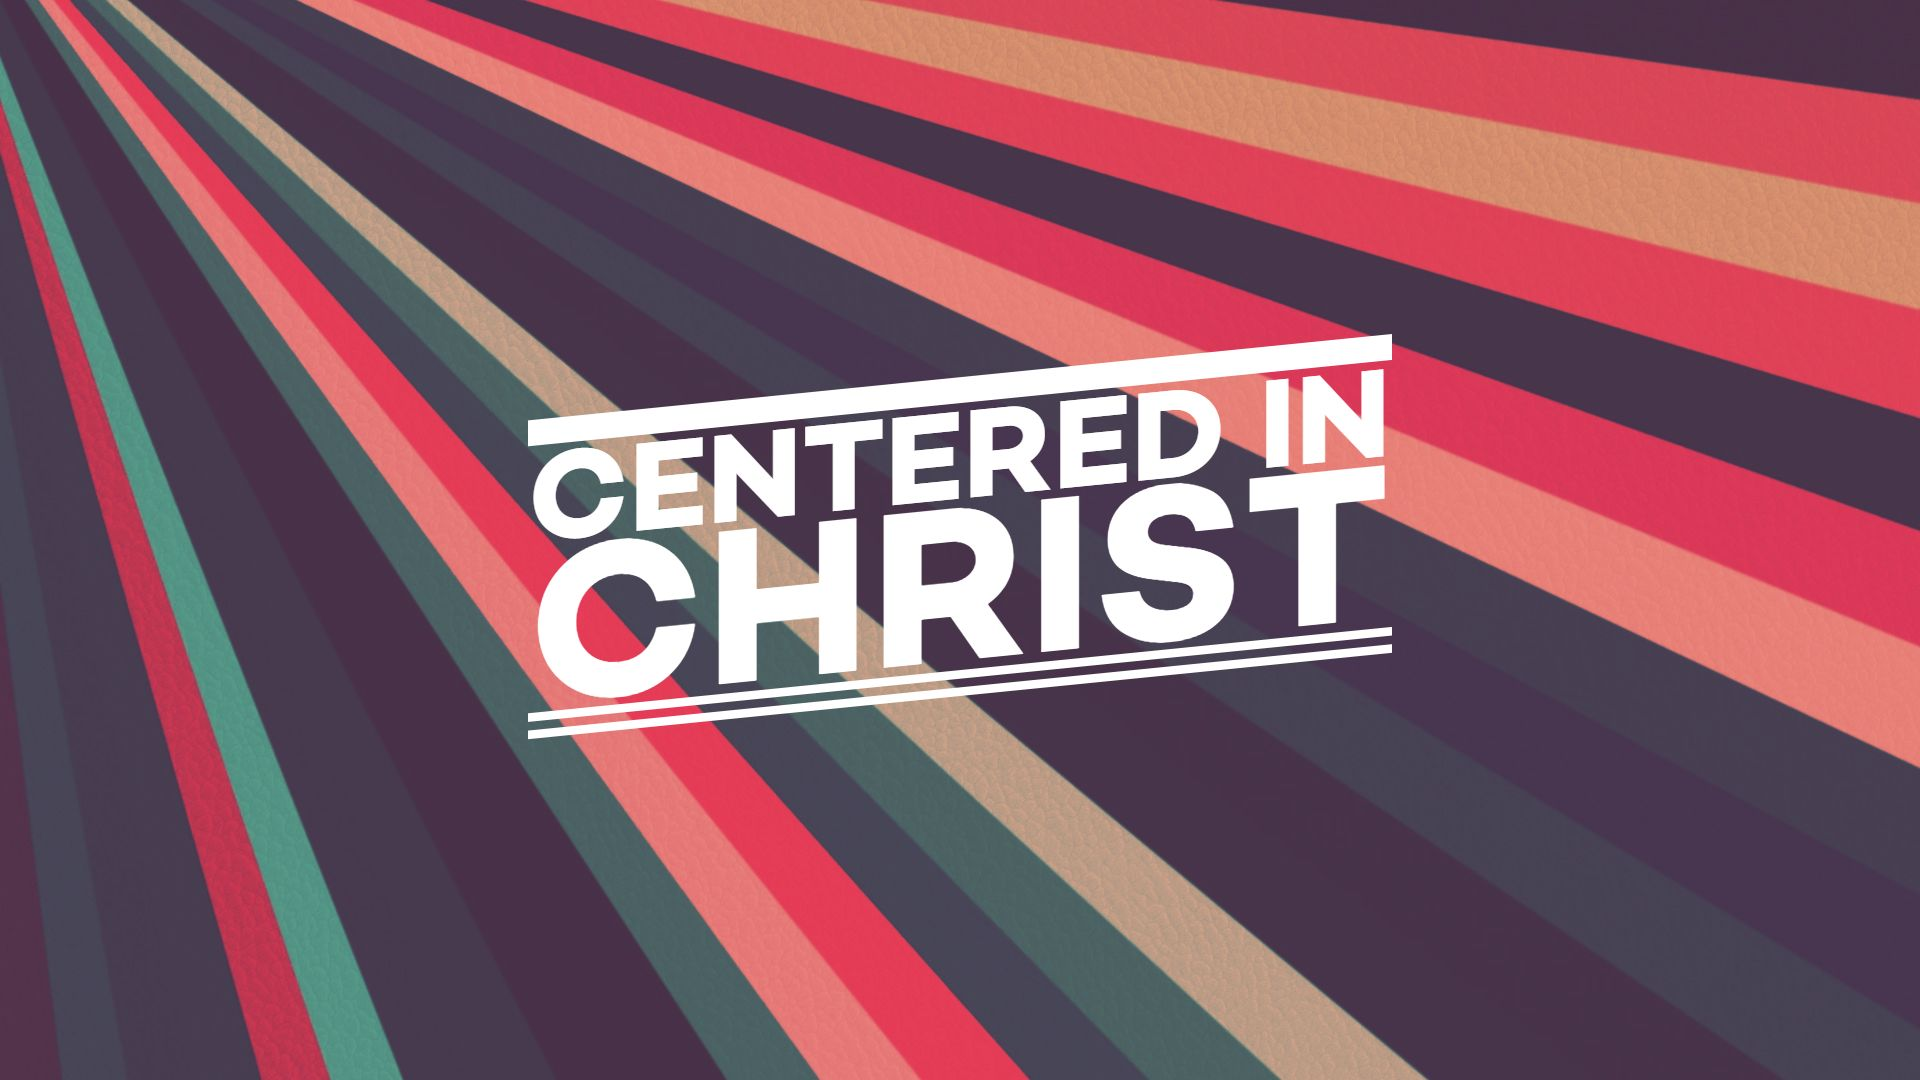 Centered in Christ